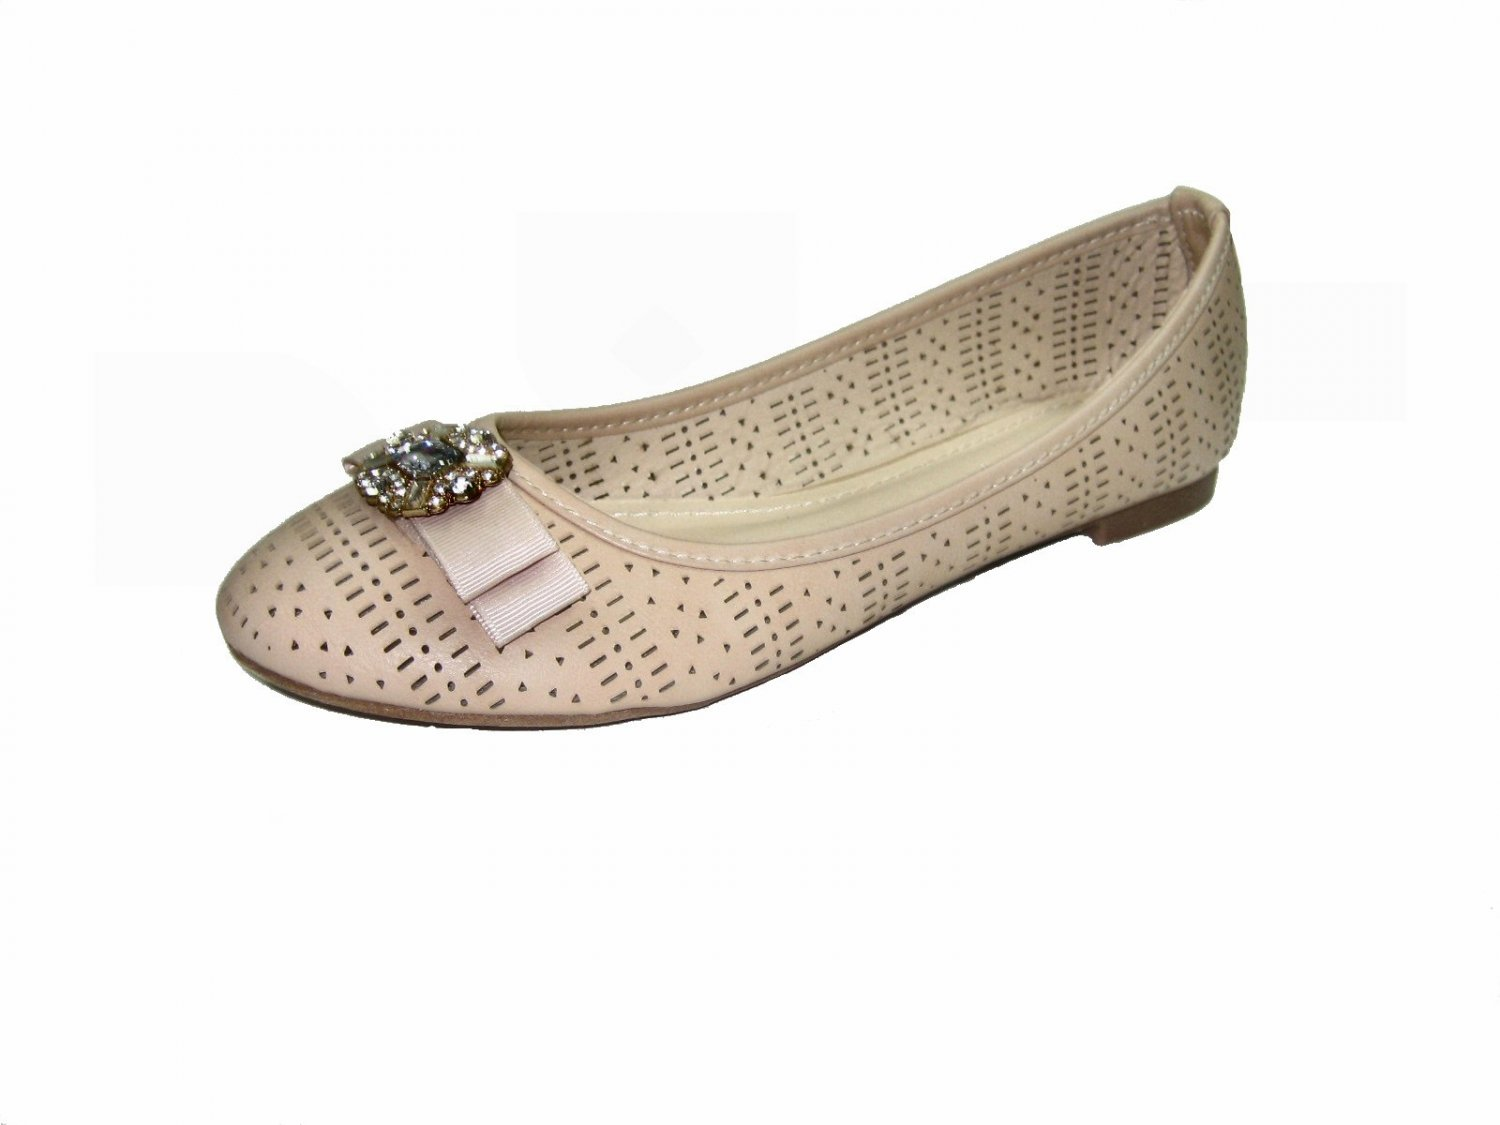 Top Moda SB-25 ballerina flats slip on pumps rhinestone bejeweled bow toe shoes beige size 7.5